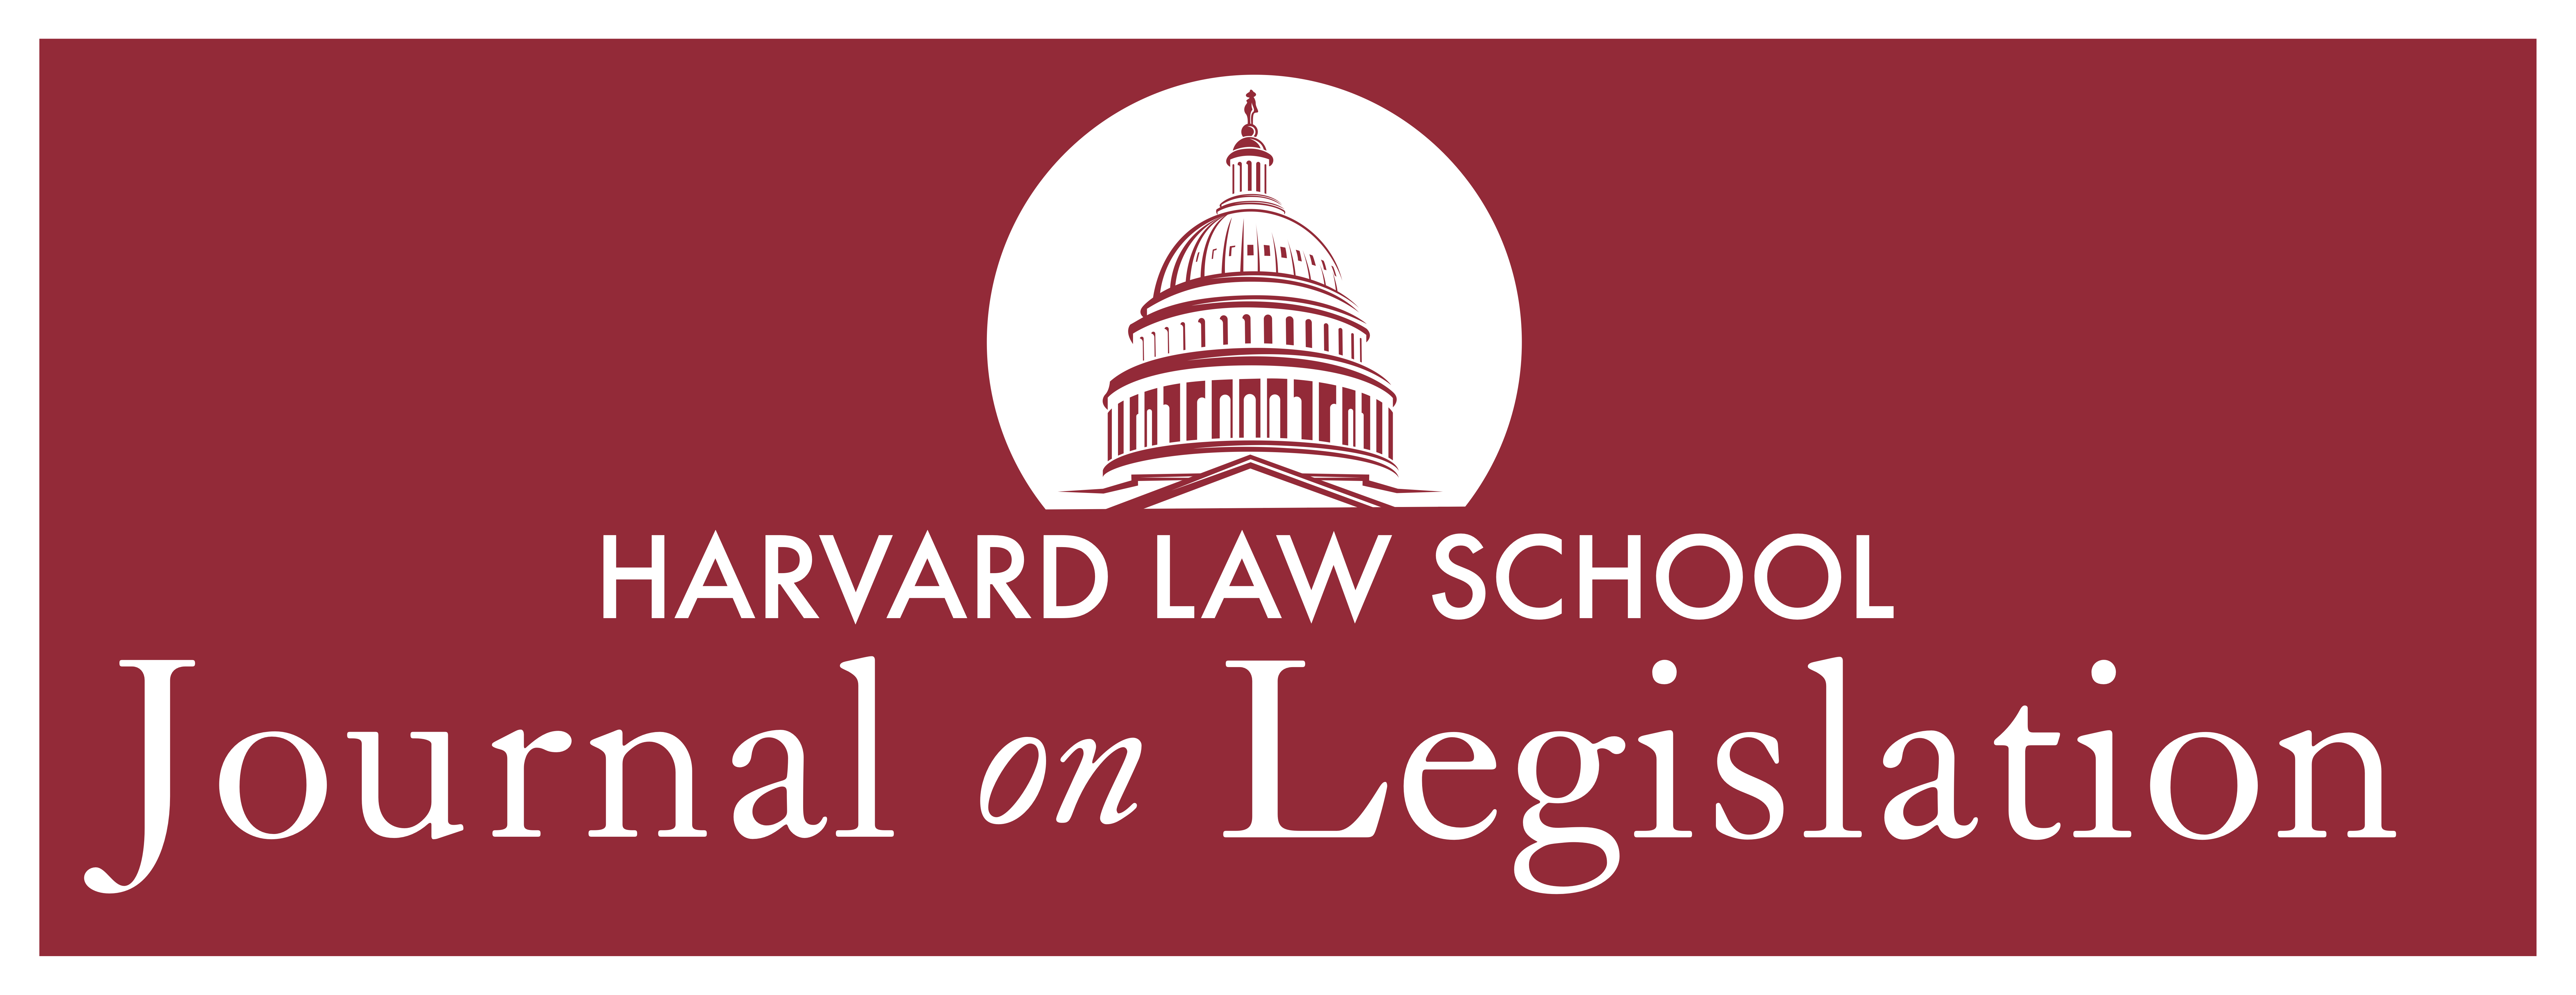 Harvard Journal on Legislation